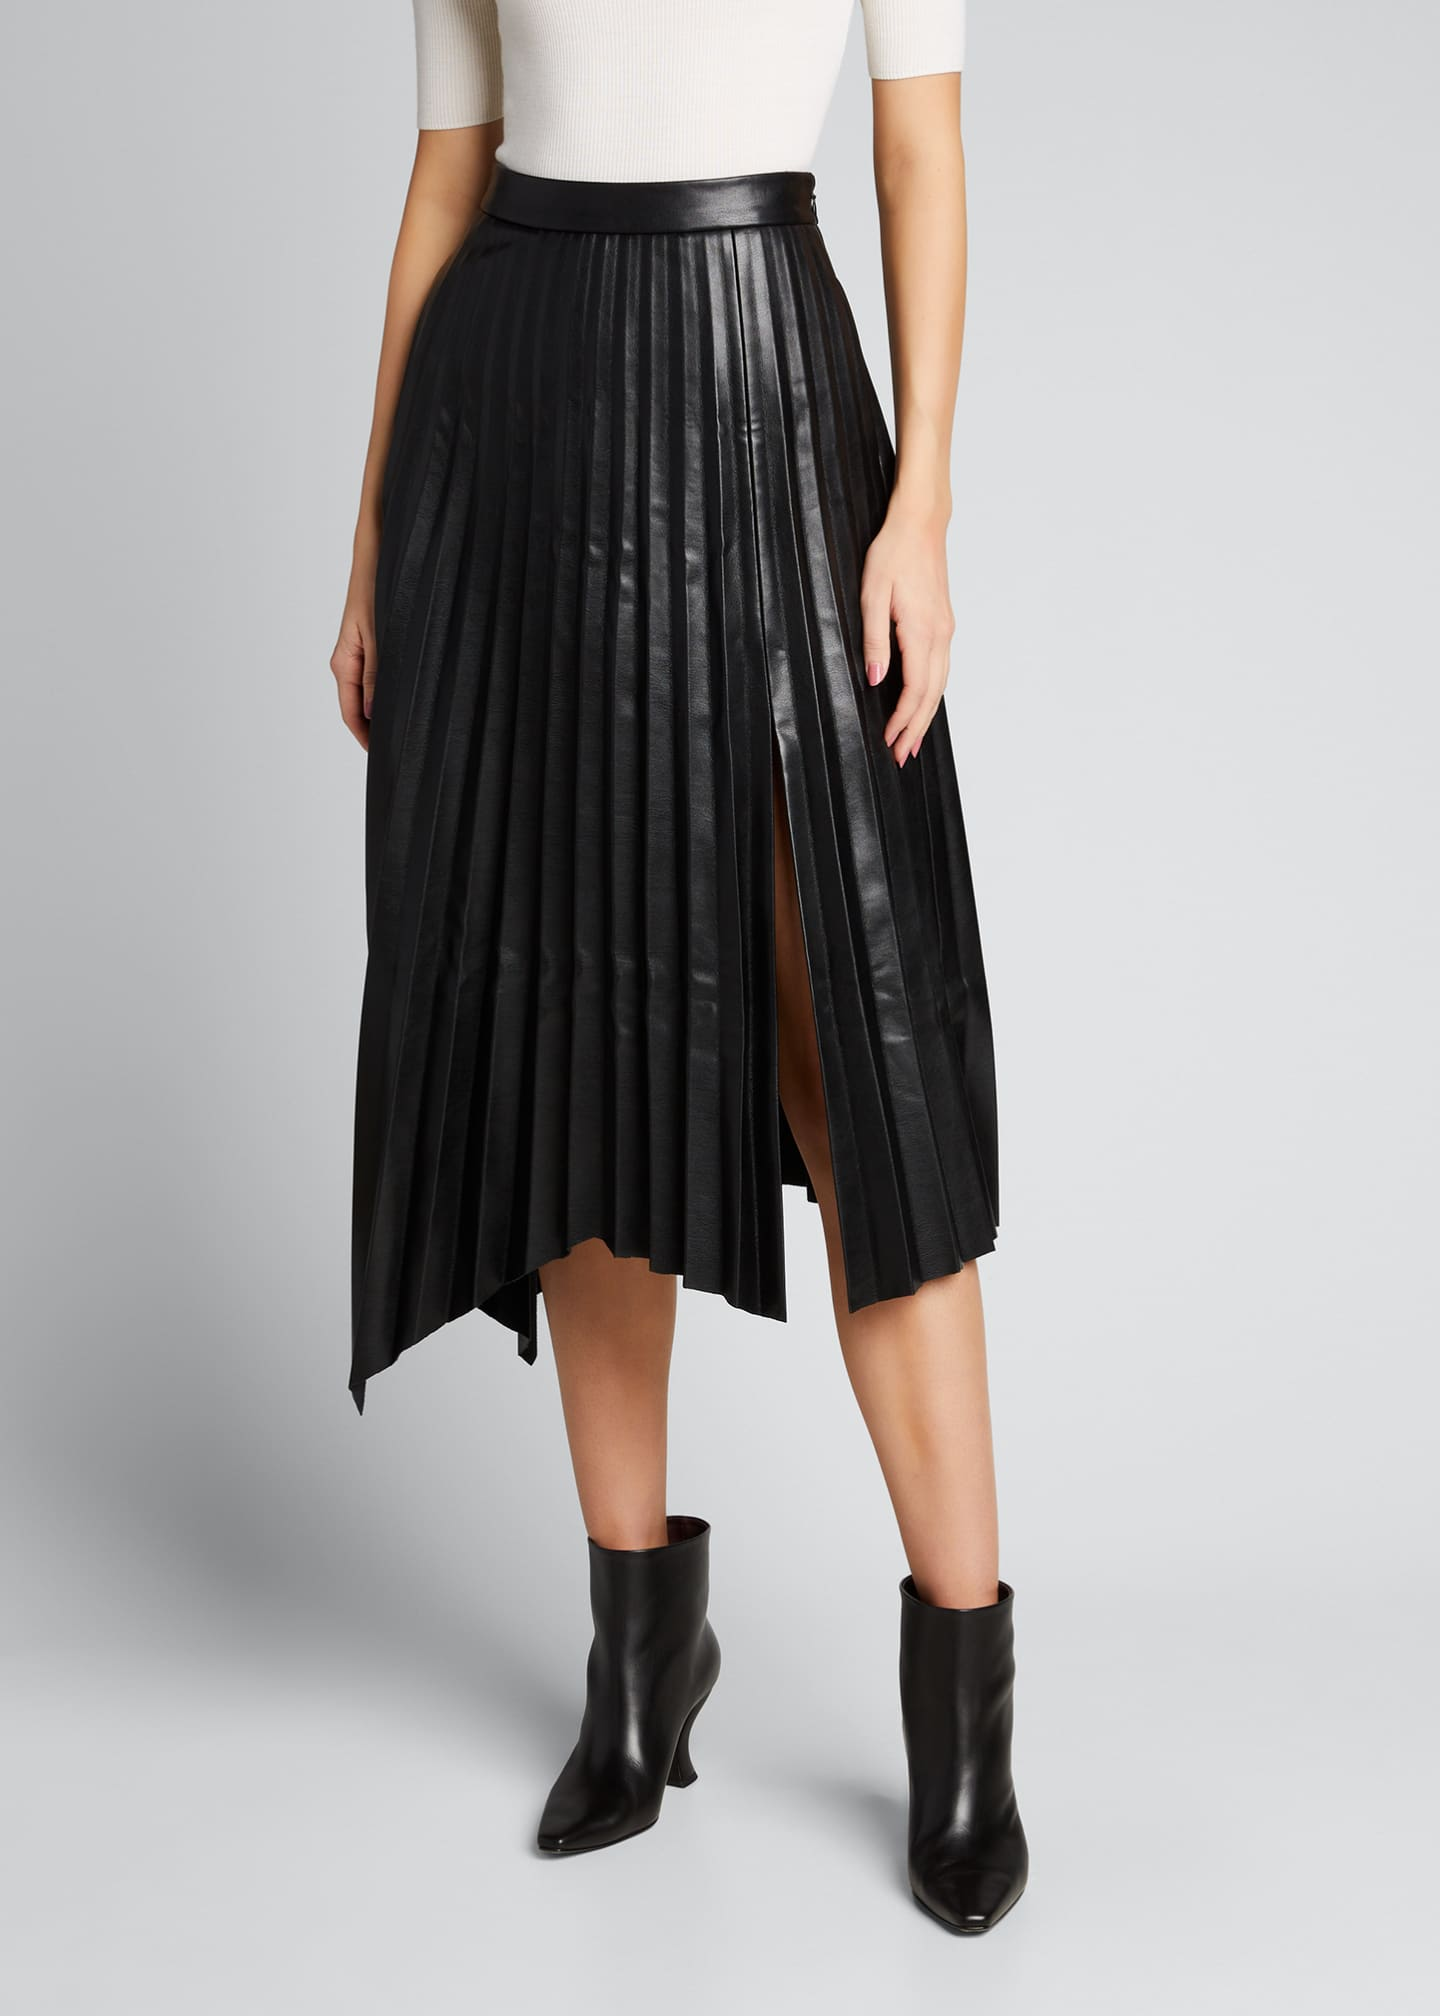 Image 3 of 5: Jayla Vegan Leather Pleated Midi Skirt